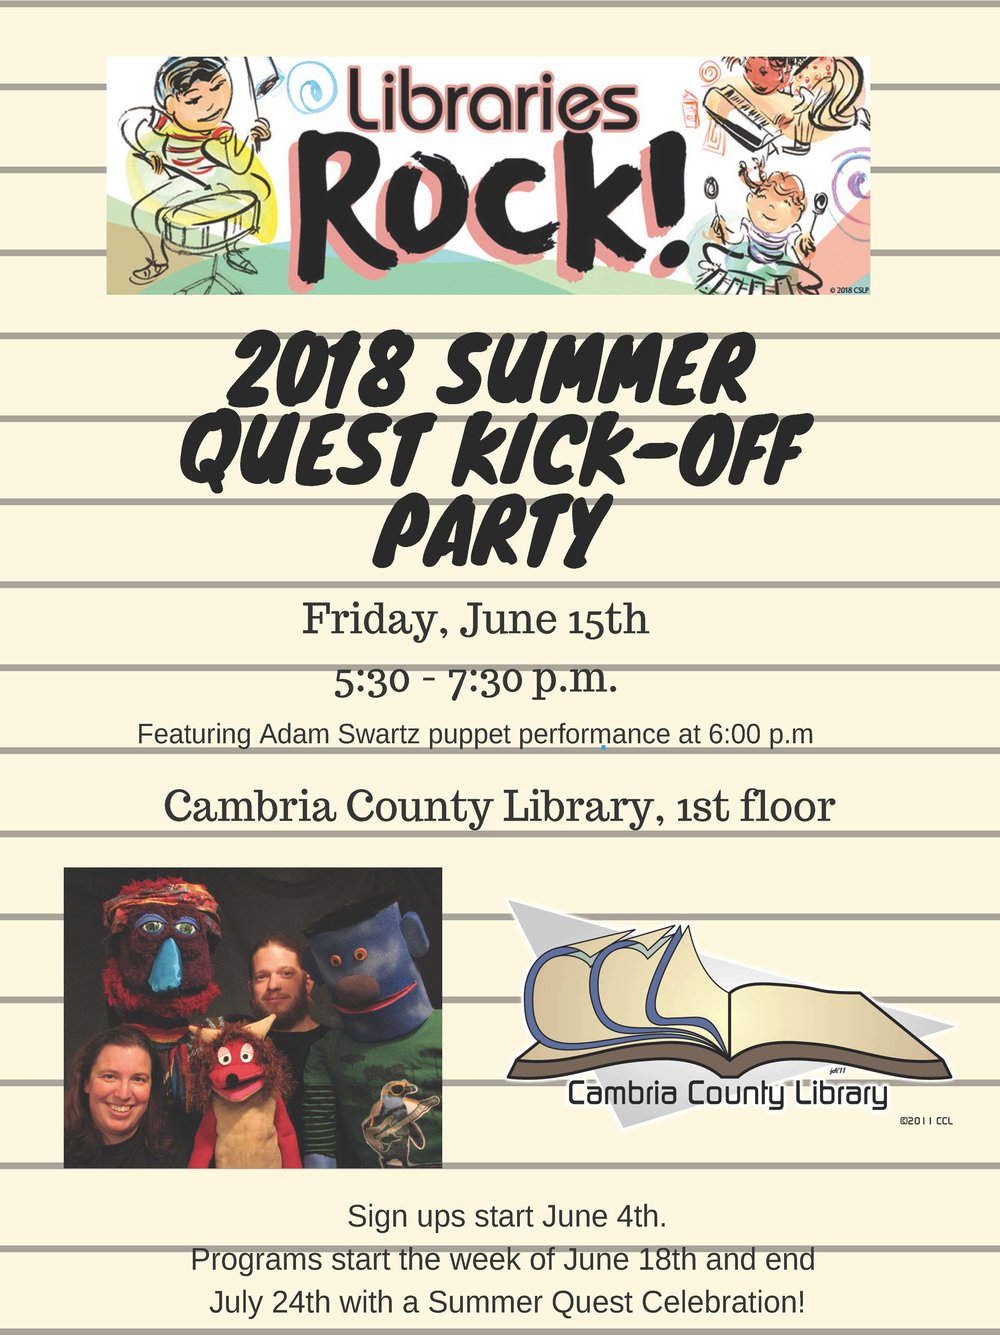 SummerQuest library kick-off party.jpg